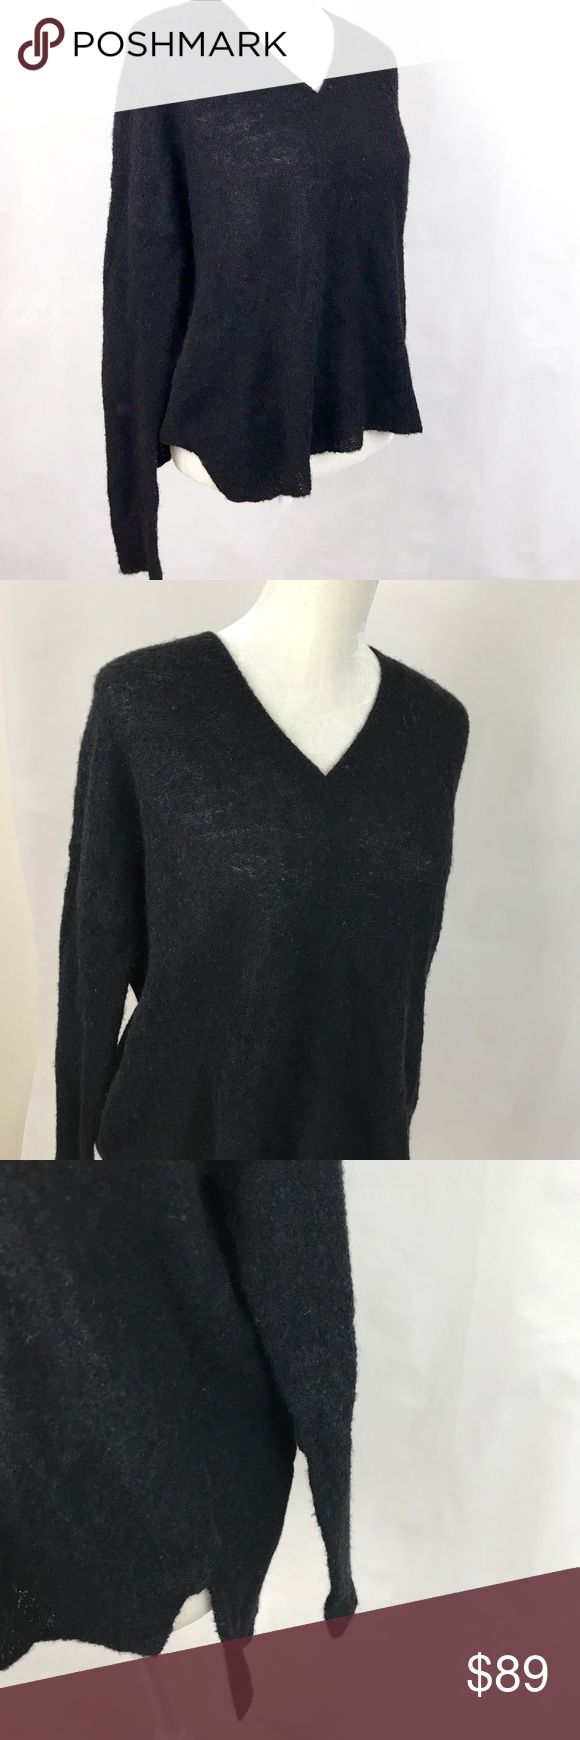 The Line Knit V Neck Black Sweater Wool Alpaca The Line designer women's v neck sweater. V neck knit. Lightly used. Line worn by Meghan Markle. Alpaca merino wool blend.   Armpit to armpit: 26 in Length: 25.5 in front, 29 back The Line Sweaters V-Necks